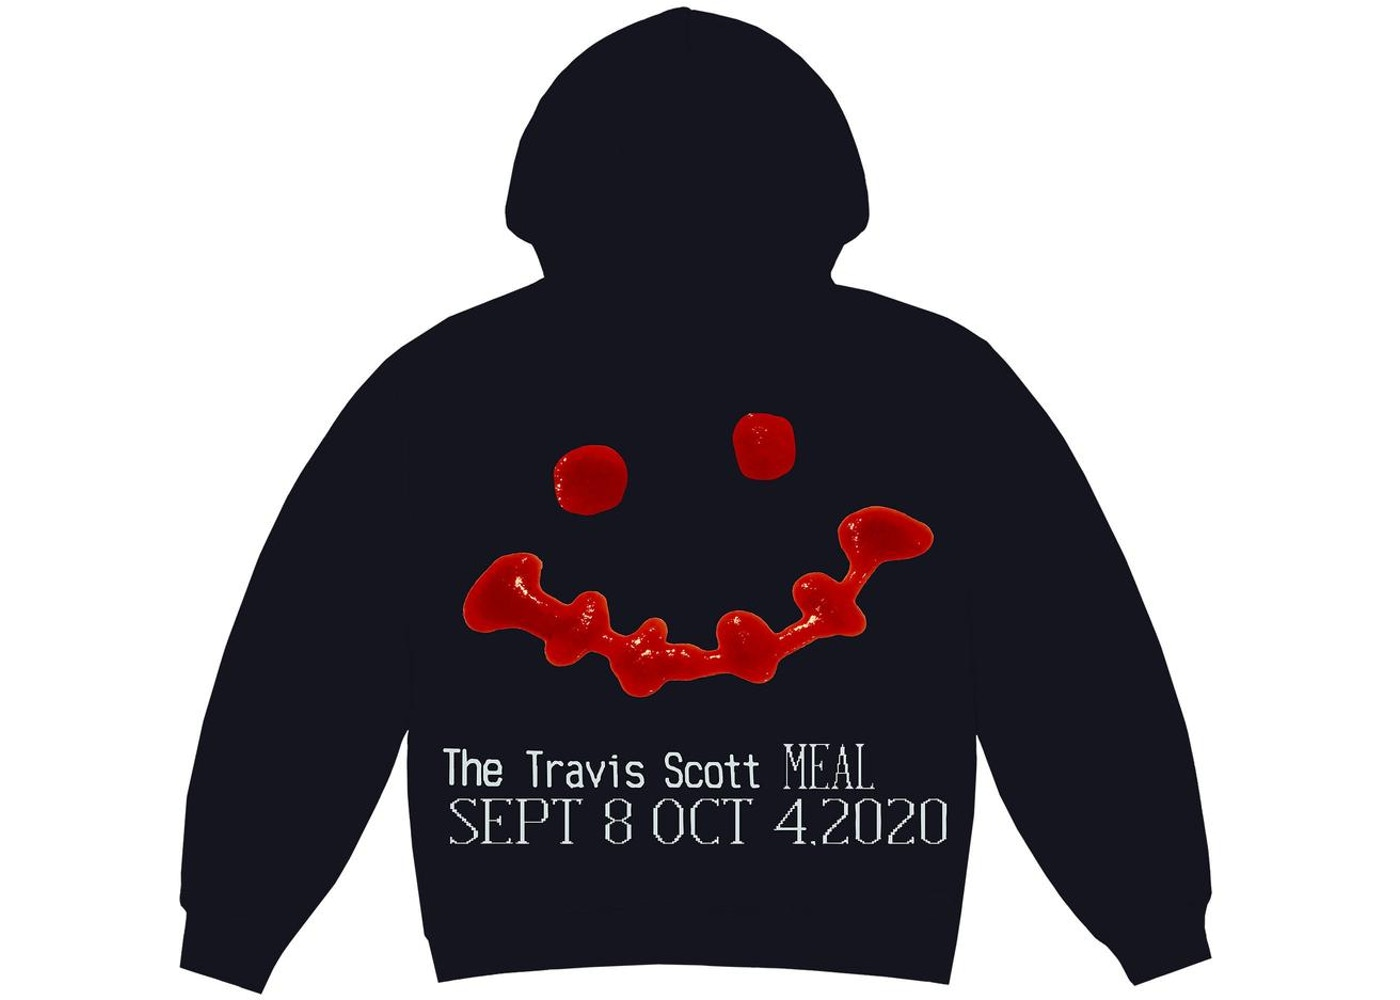 Travis Scott x CPFM 4 CJ Ketchup Hoodie Black